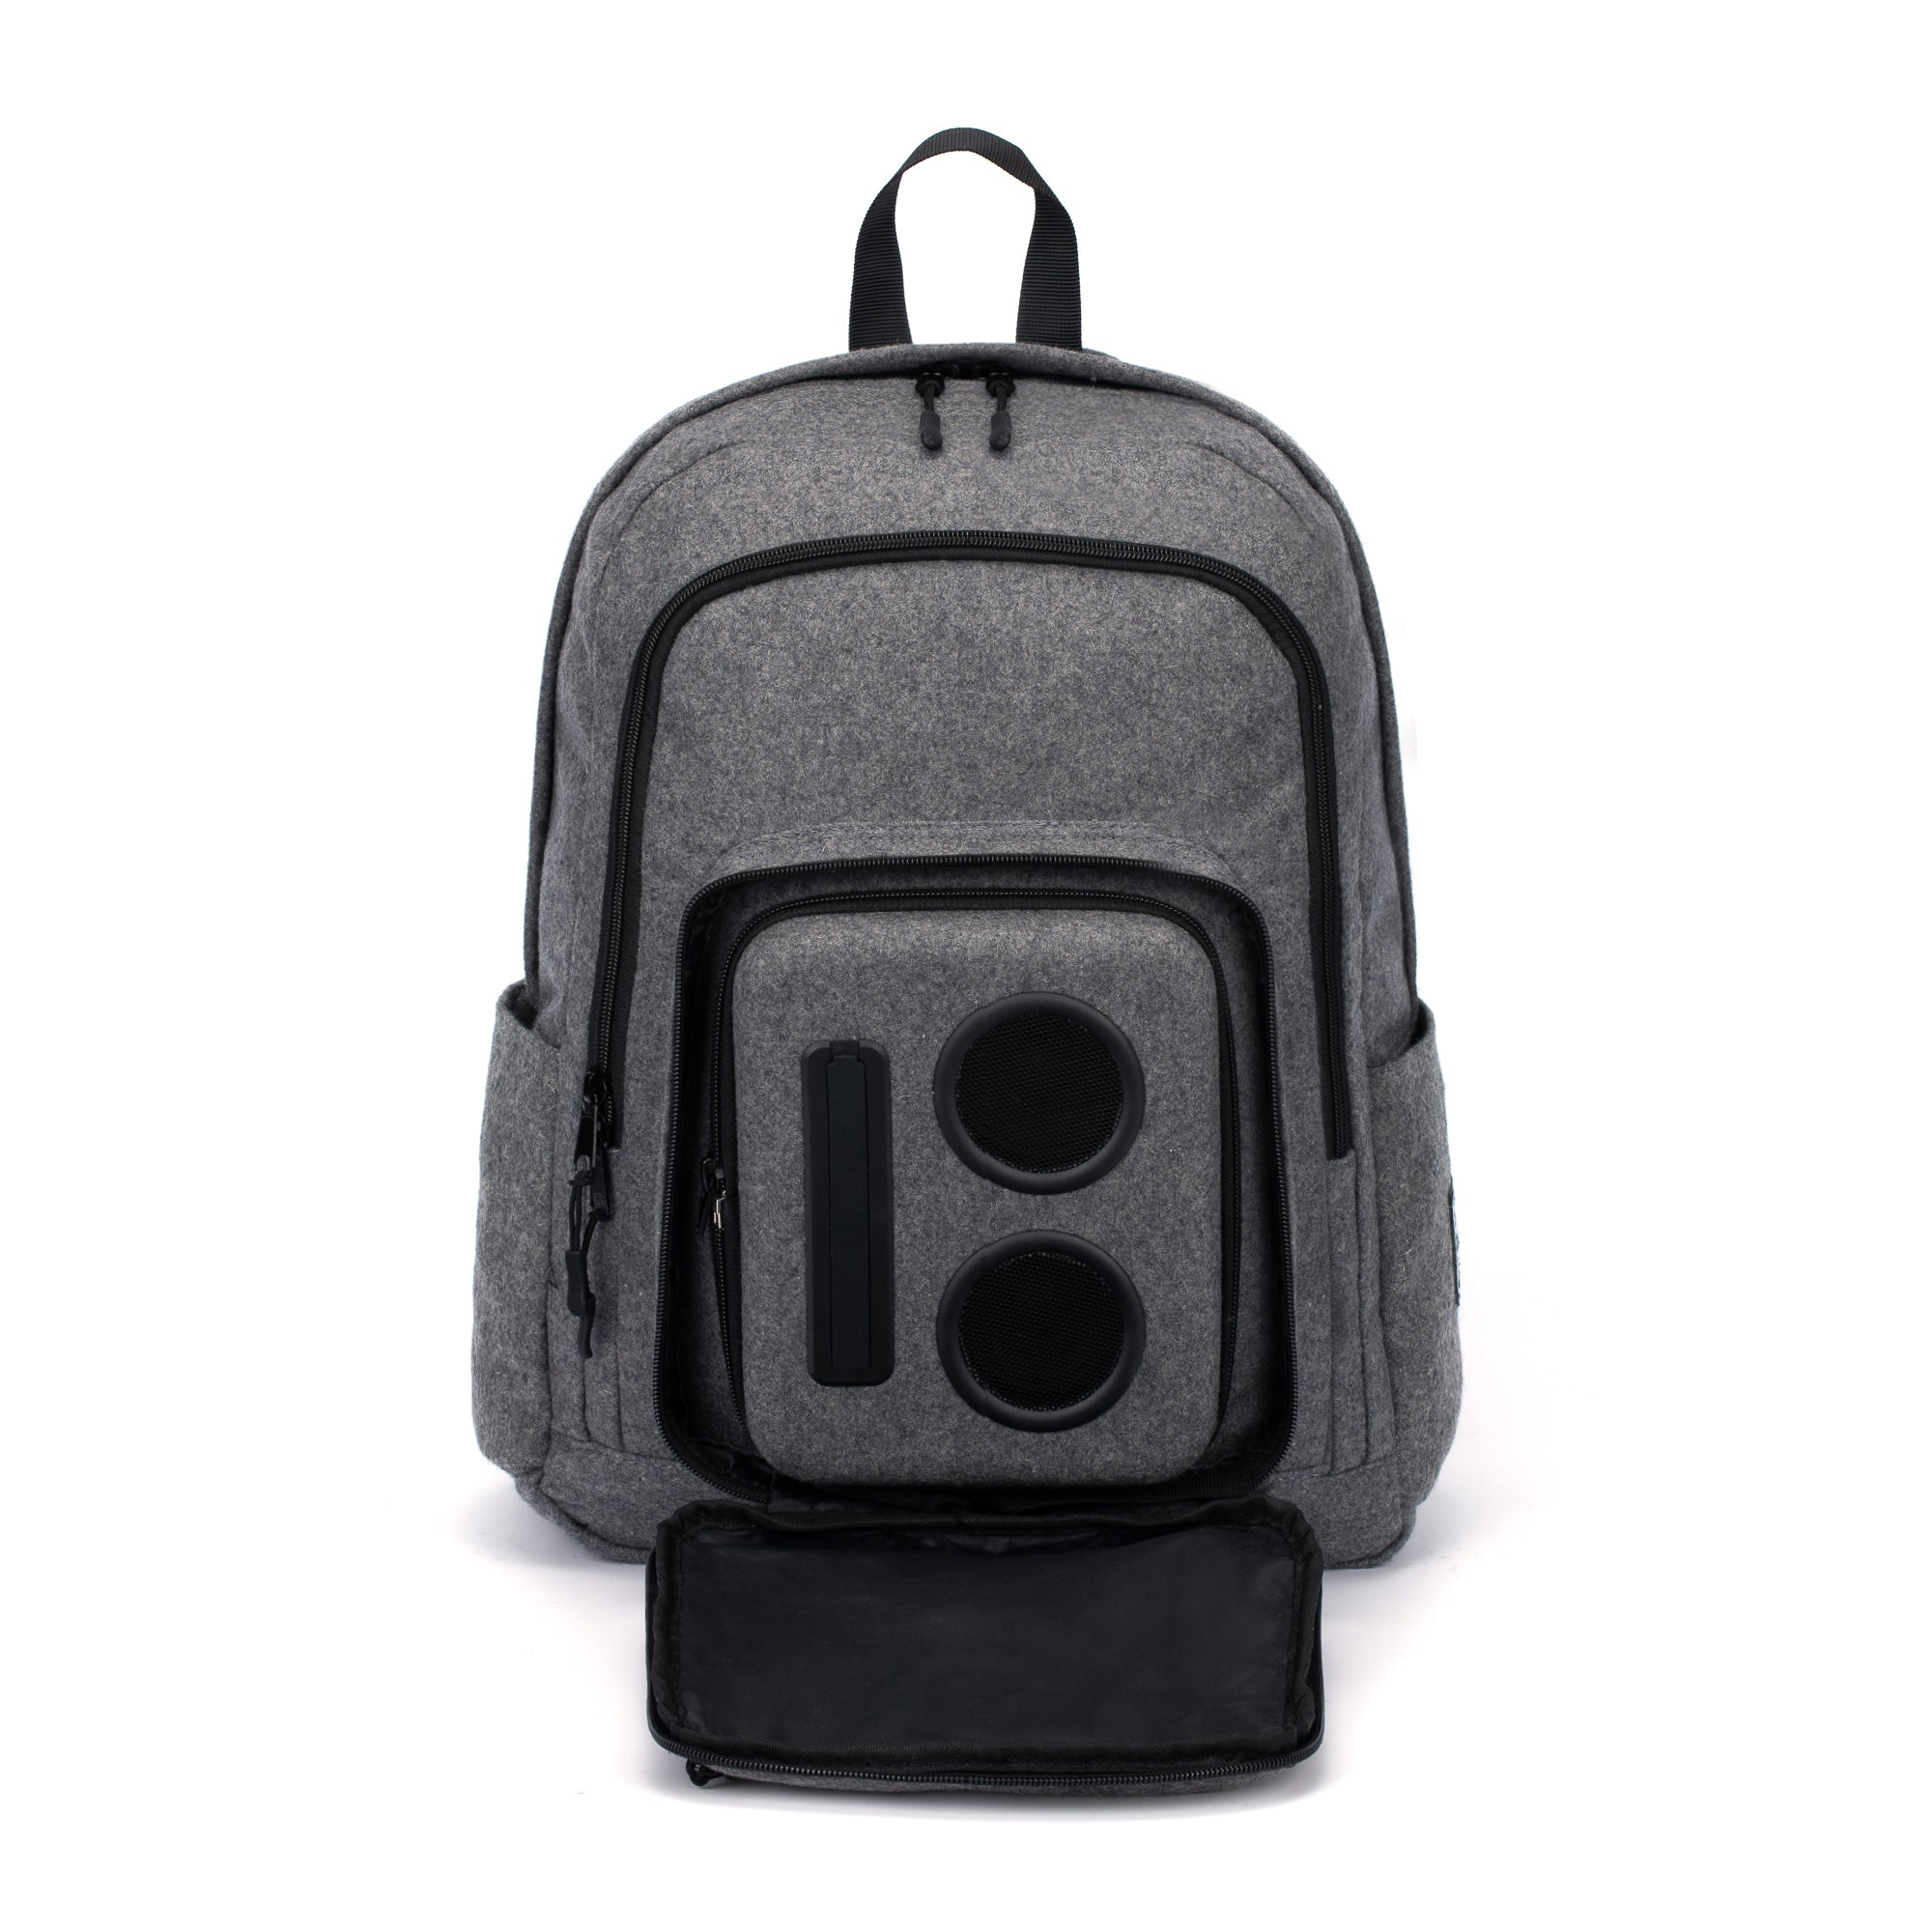 228ebcdff4 The 2018 Rager Backpack  The Premium Bluetooth Speaker Backpack